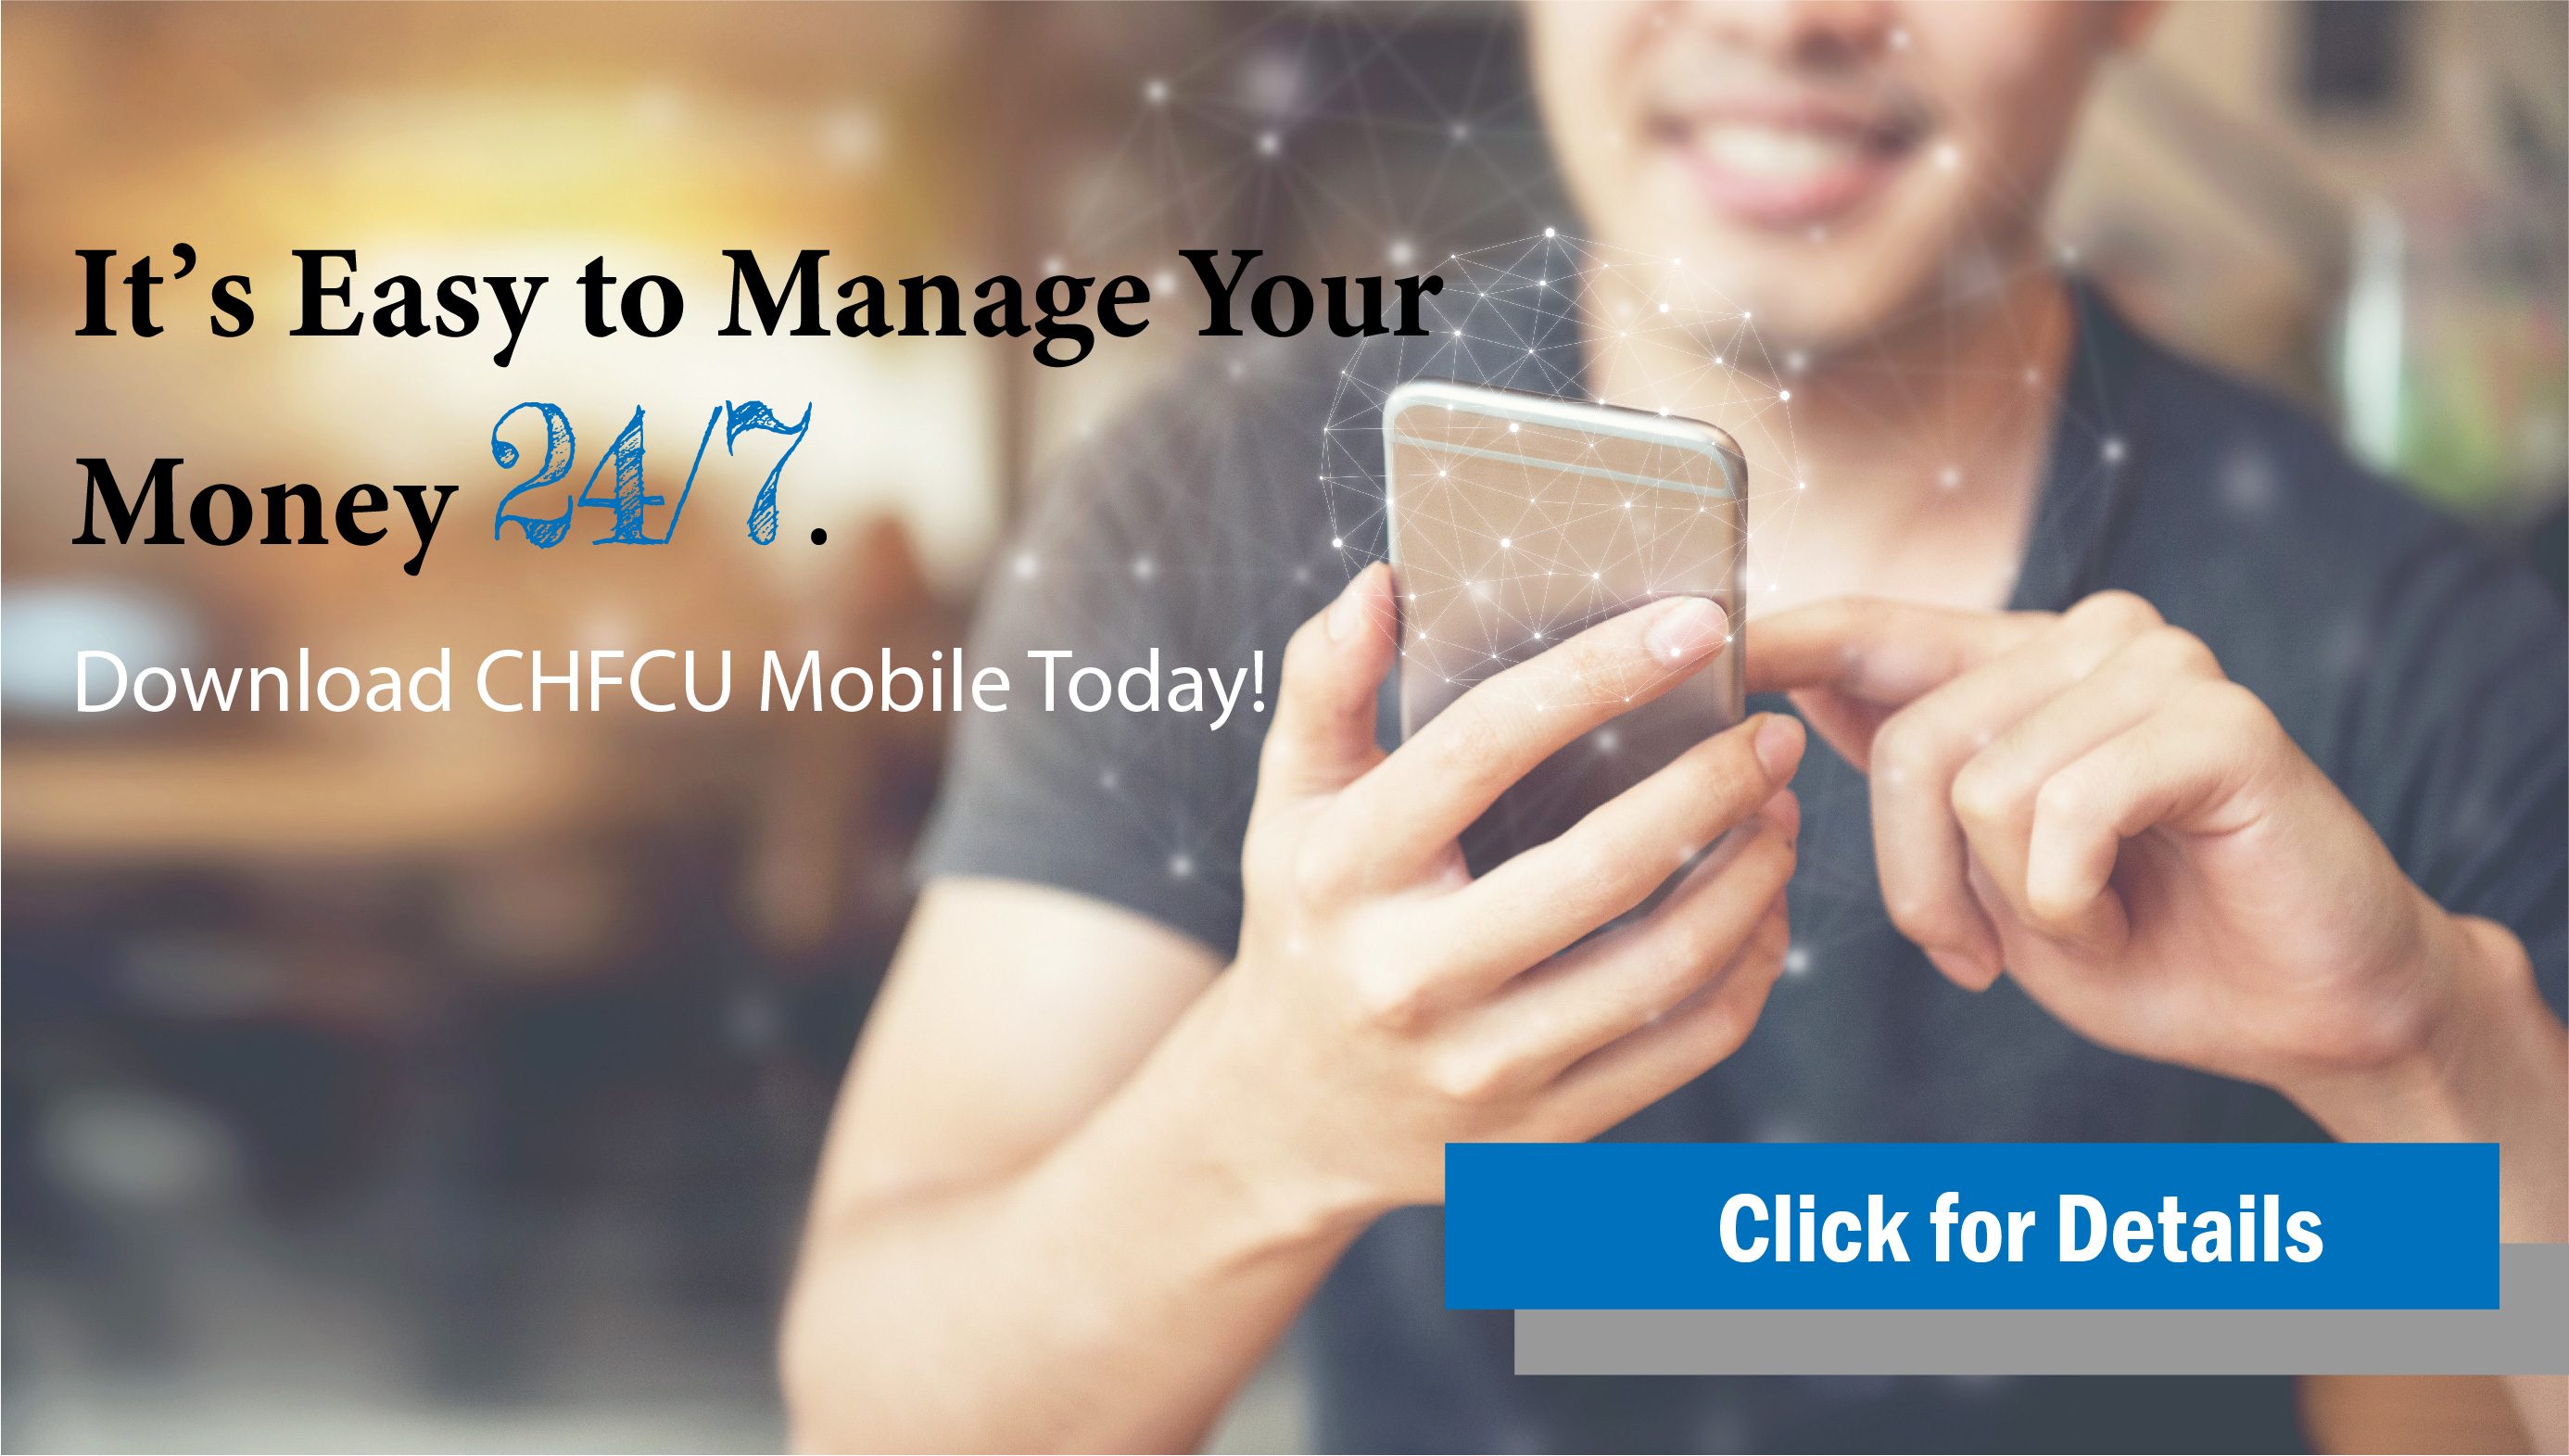 Download the New CHFCU Mobile today!